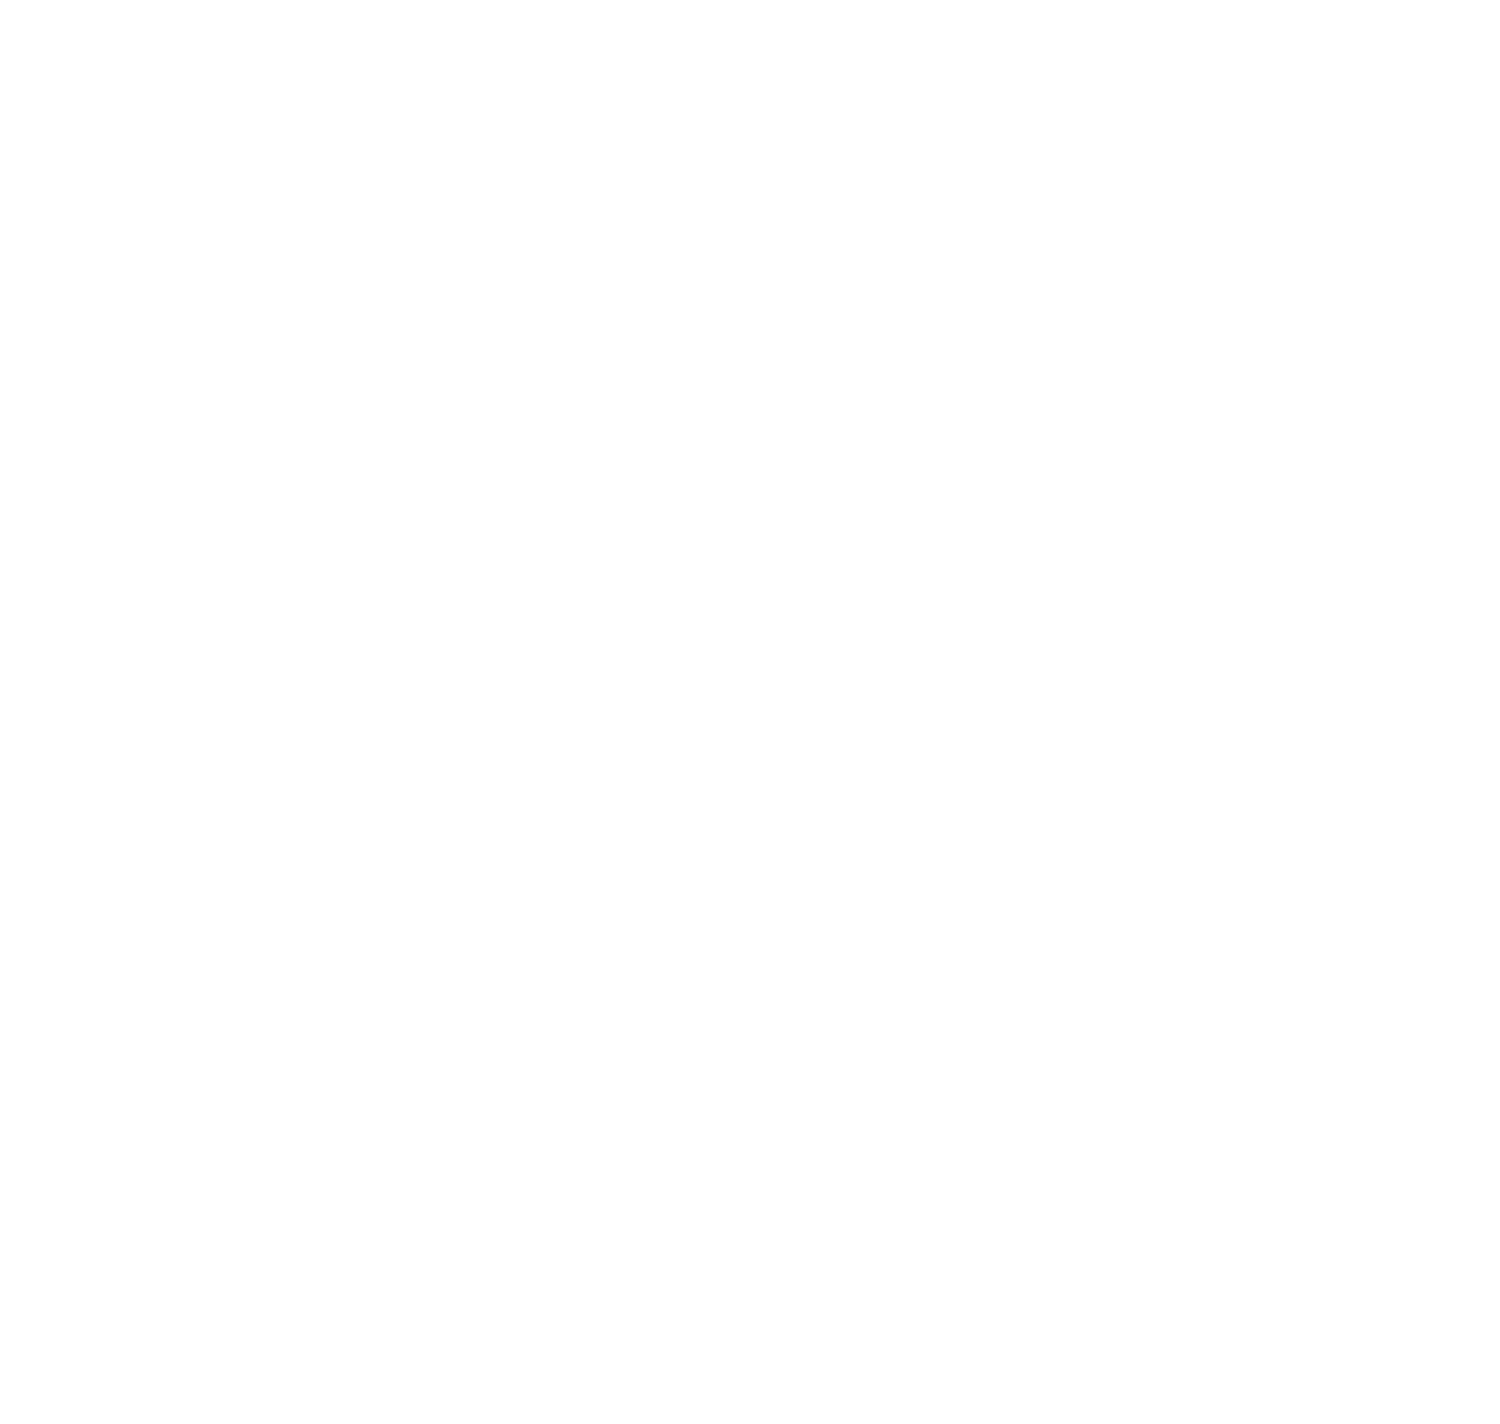 Brooklyn Habit